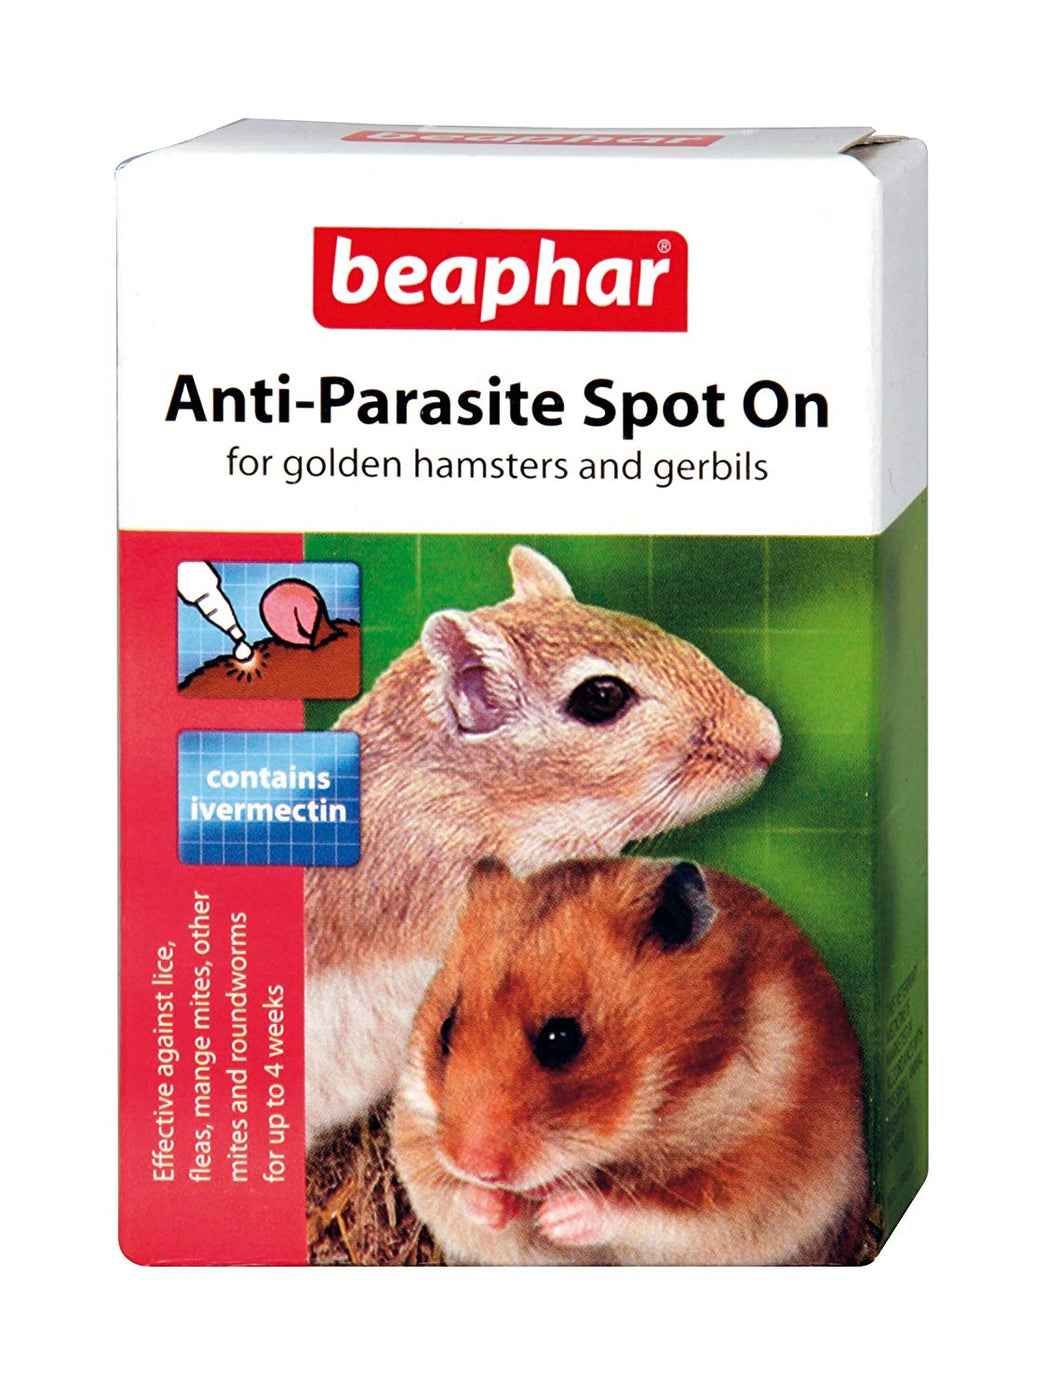 Beaphar Books Anti-Parasite Spot-On For Golden Hamsters And Gerbils X 2 Pack